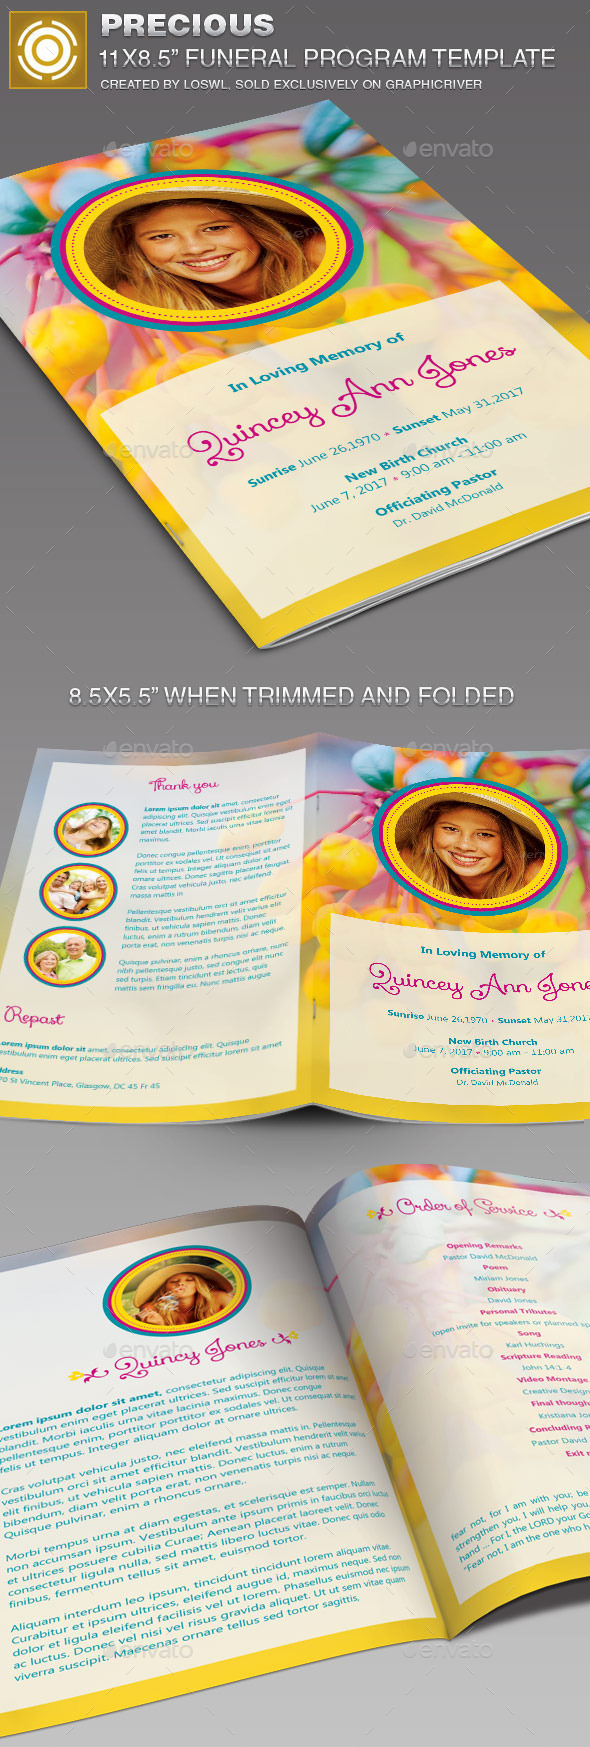 GraphicRiver Precious Funeral Program Template 11468840